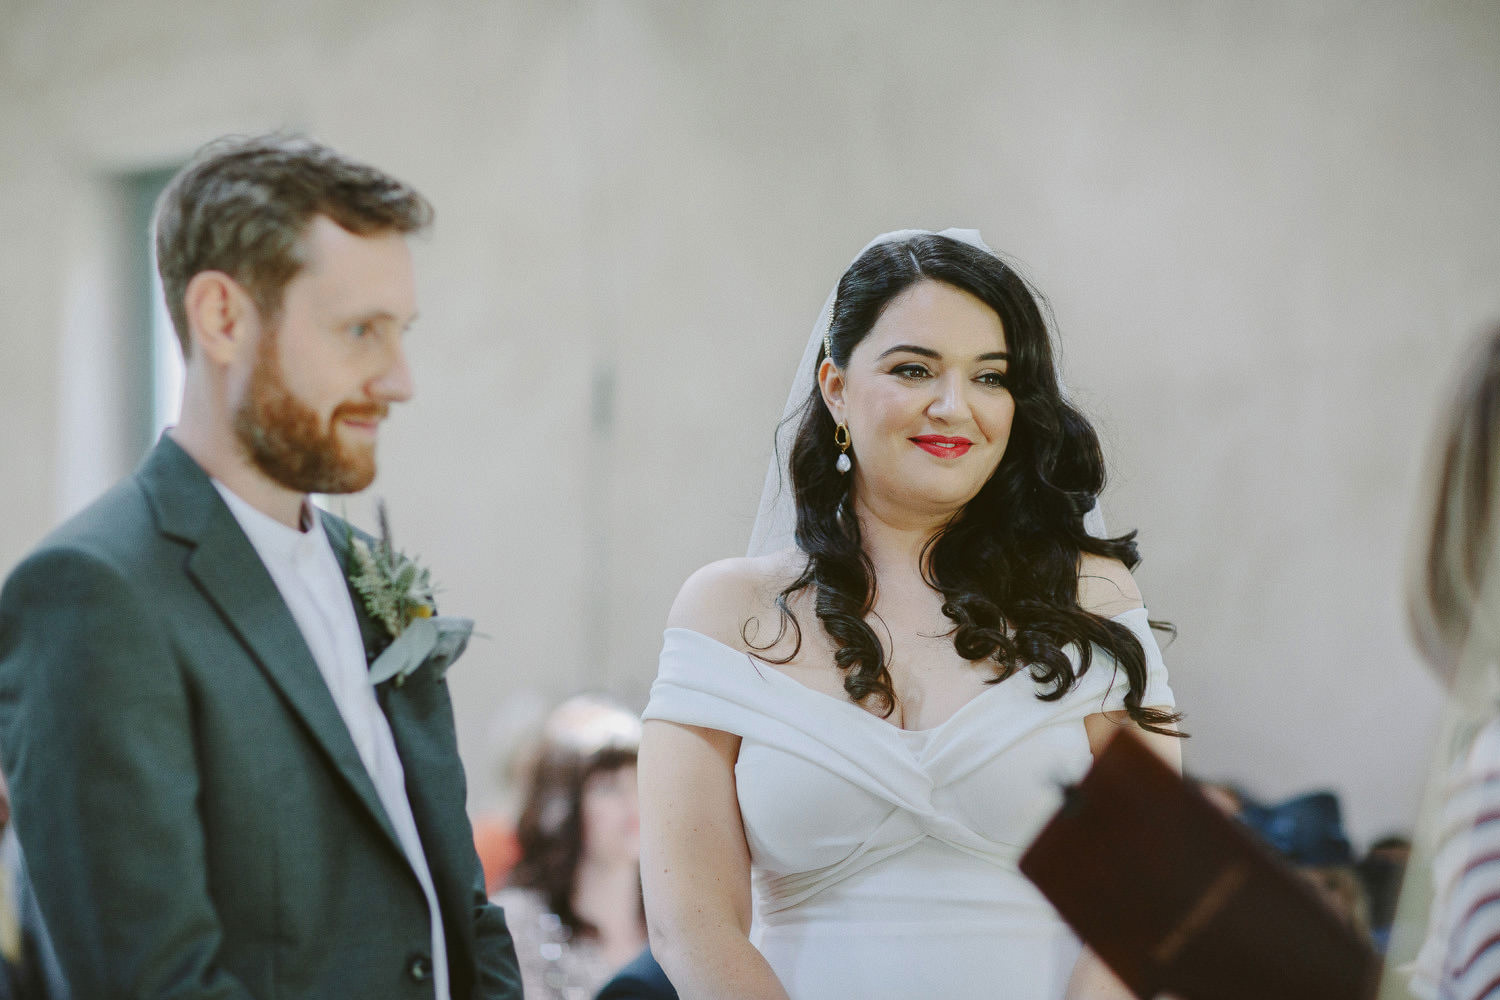 bride and groom smile during wedding ceremony at Cartmel